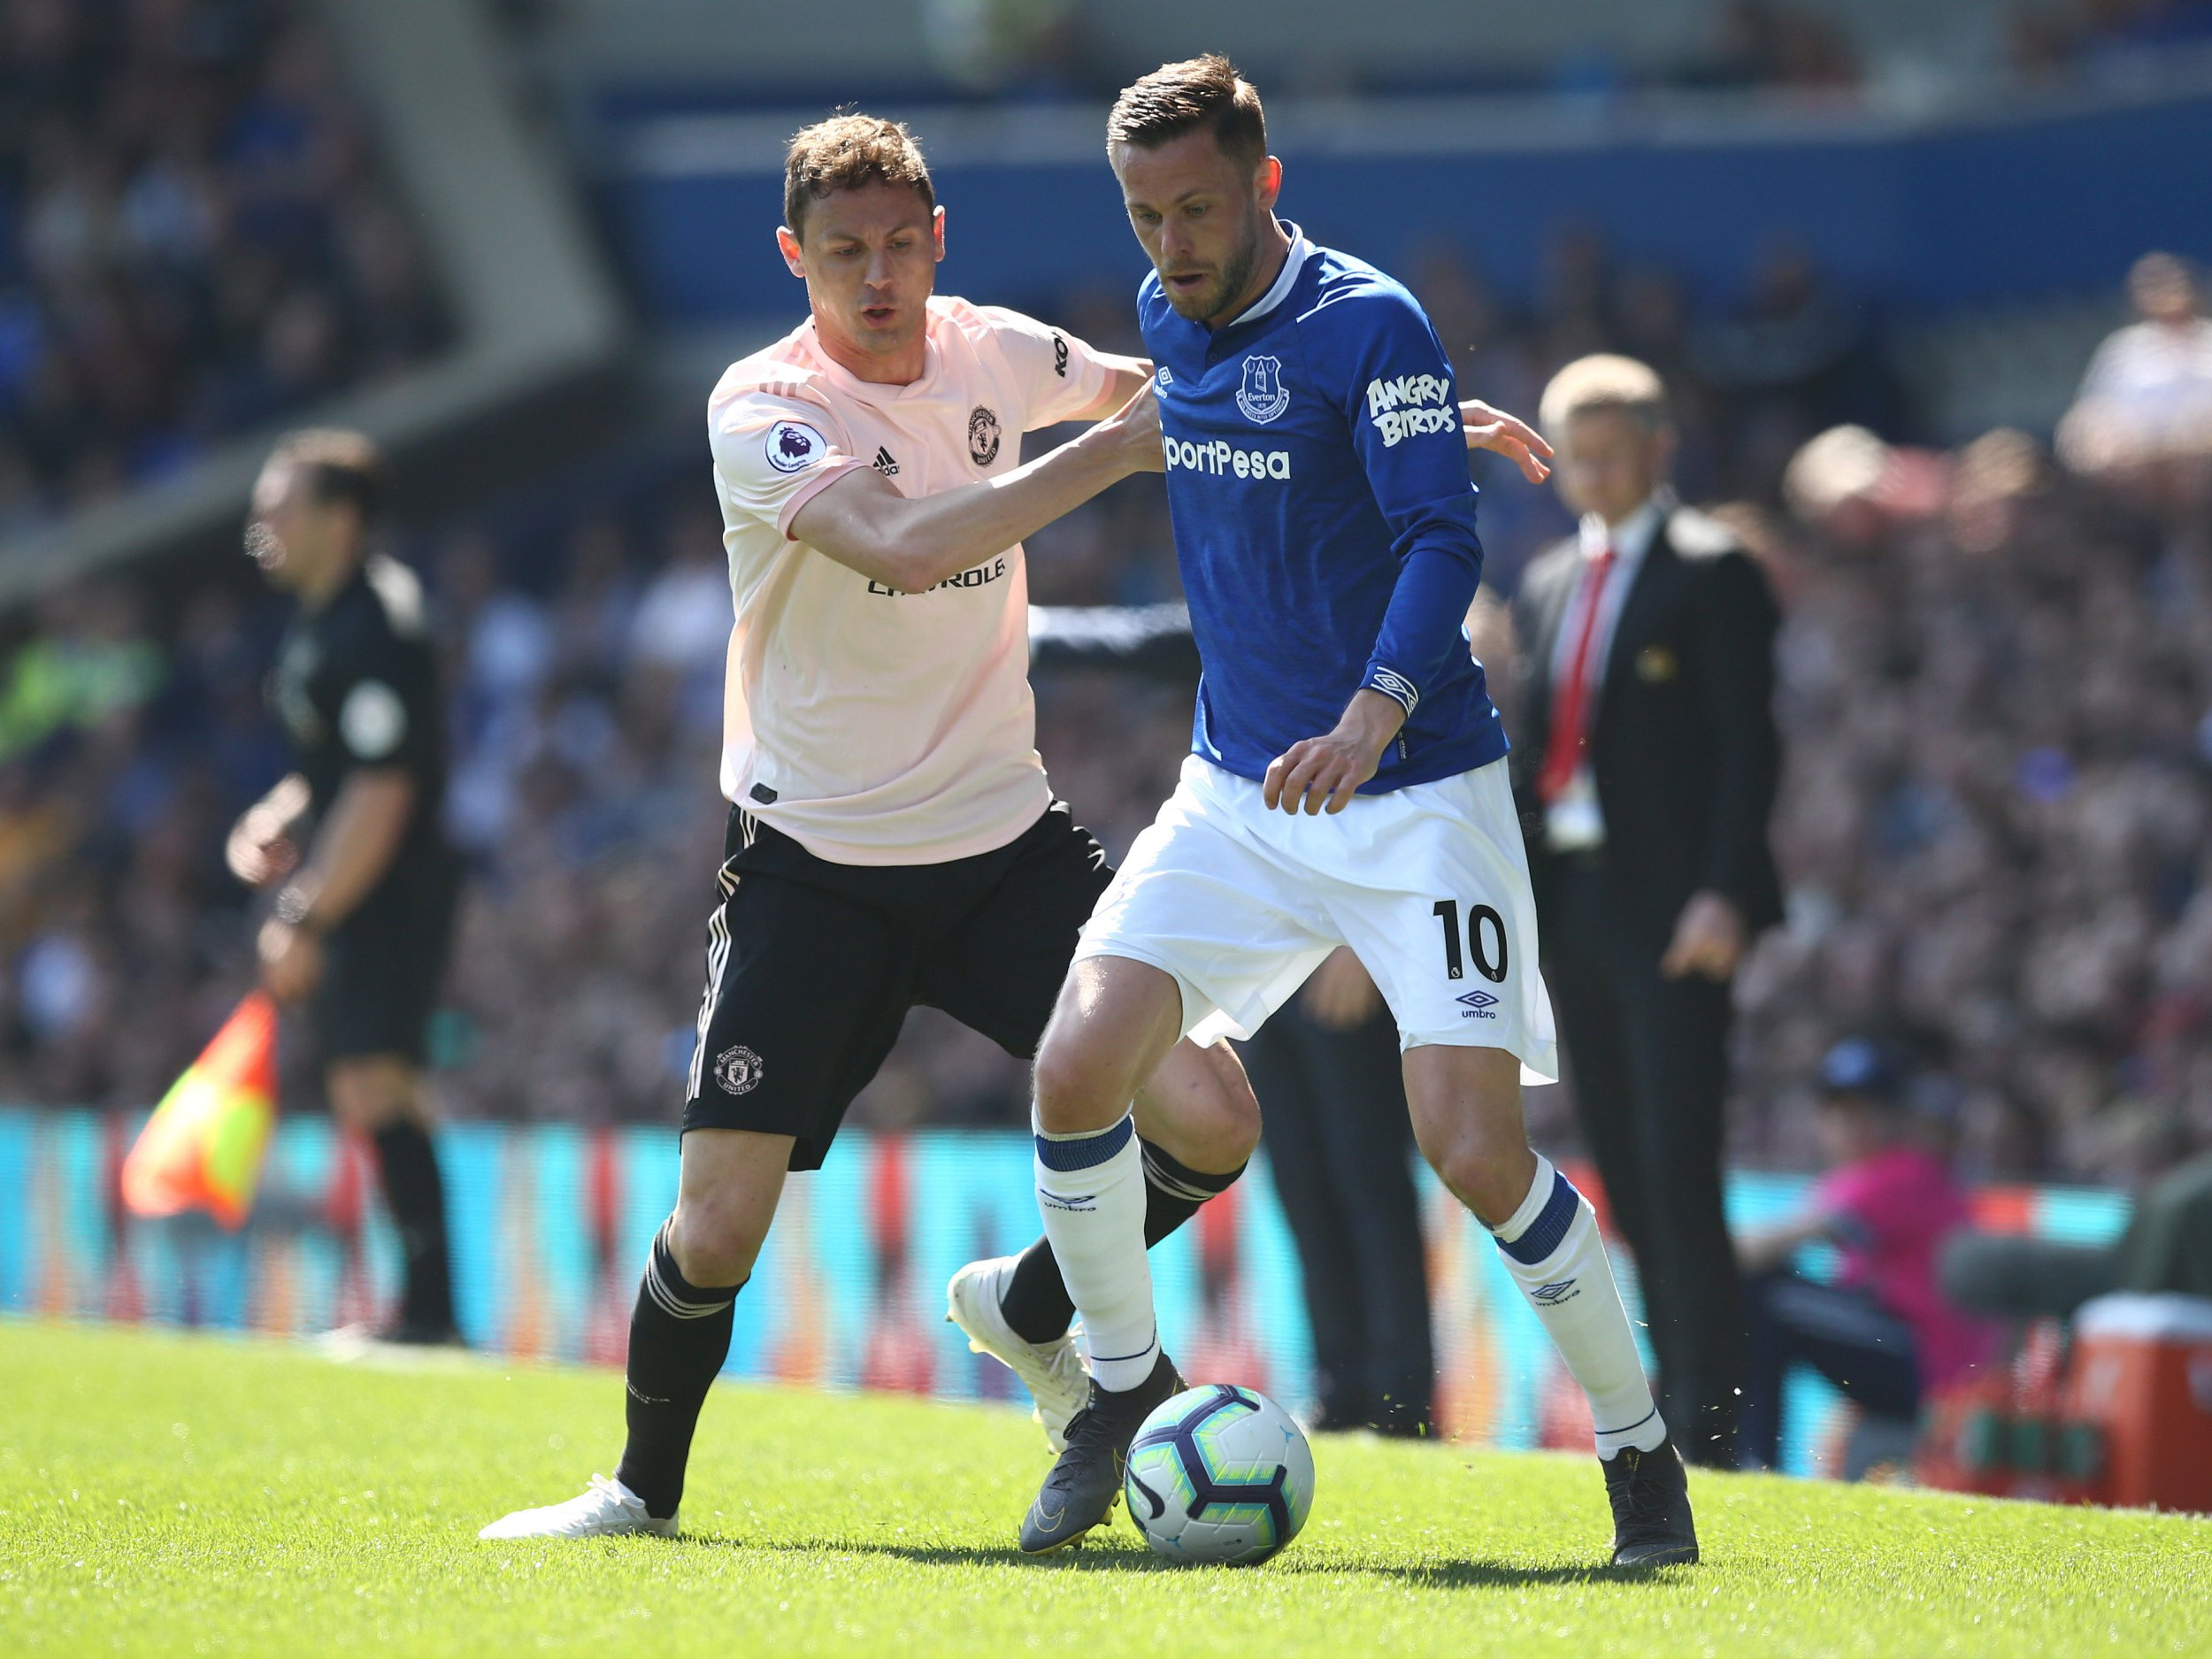 'He's towing a caravan' – Jamie Carragher slams Nemanja Matic for his poor display in Manchester United's clash with Everton